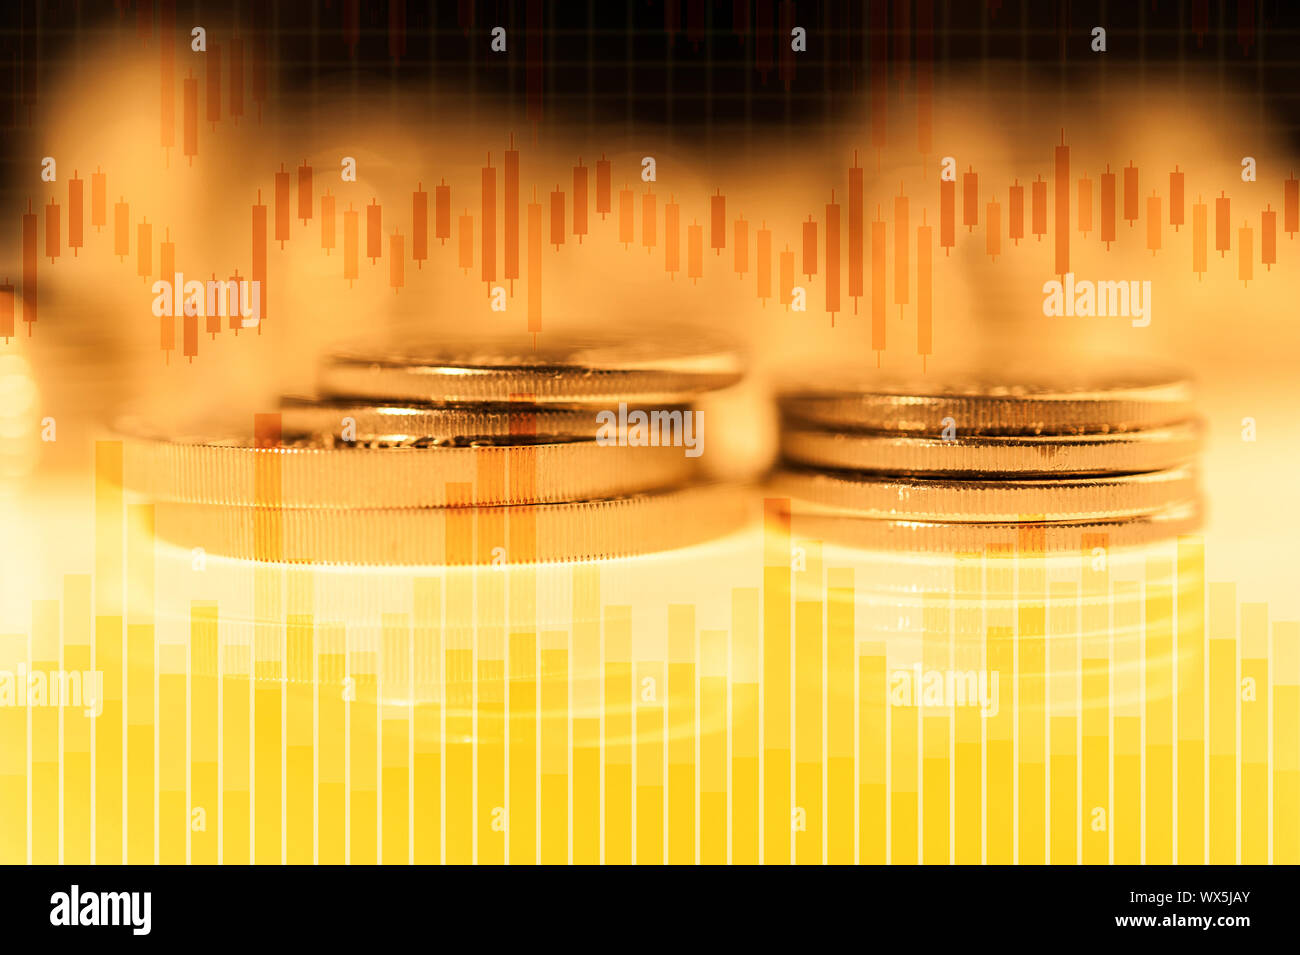 Graph and rows of gold coins for finance and business concept. Trade in precious metals. Stock Photo